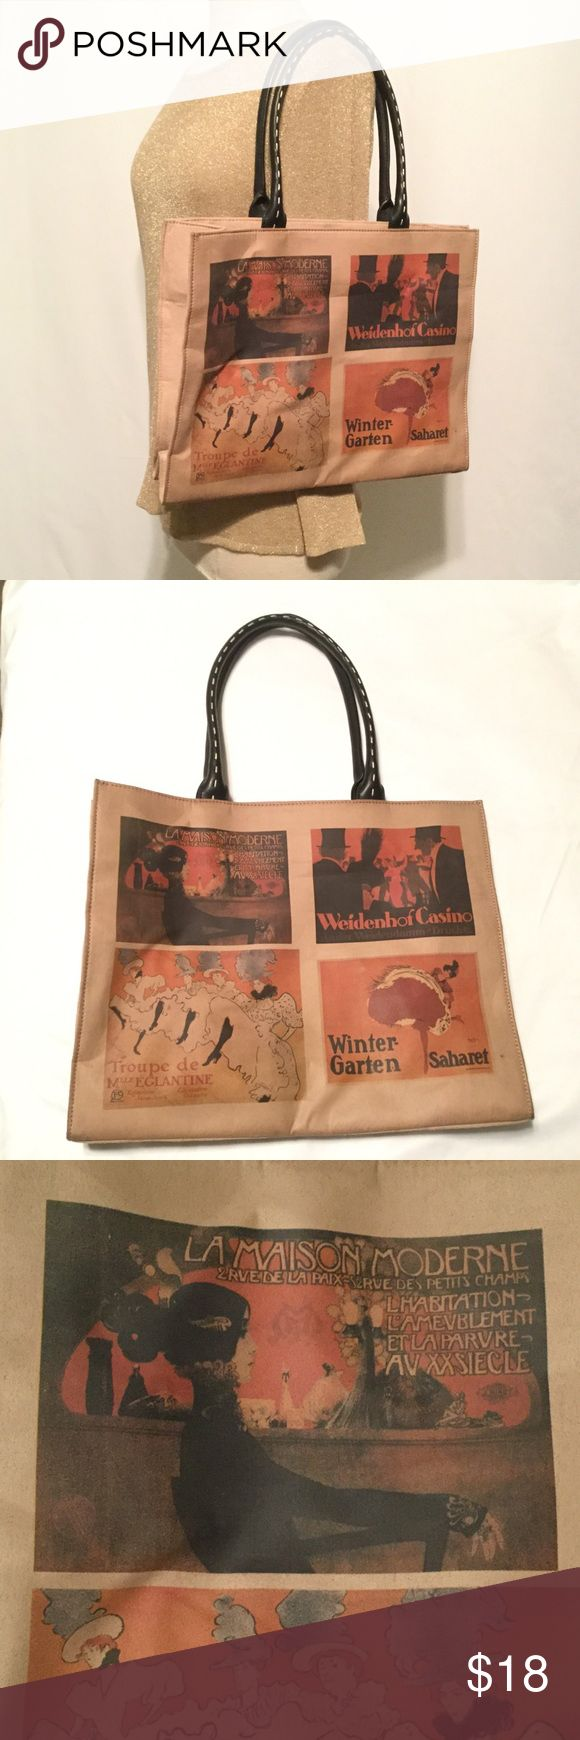 "Tote with cabaret scenes Brown tote, leather or leatherlike.  Front has 4 cabaret posters:  La Madison Moderne by Manuel Orazi, Paris  Weidenhof Casino by Ernst Lubbert, Berlin  Winter-Garten Saharet by Maurice Biais, Berlin  Troupe de Mlle. Elegantine by Henri de Toulouse Laurence, Paris  Zip closure, inside zip, stitched black leather handles. About 15"" x 12"".   015 Bags Totes"